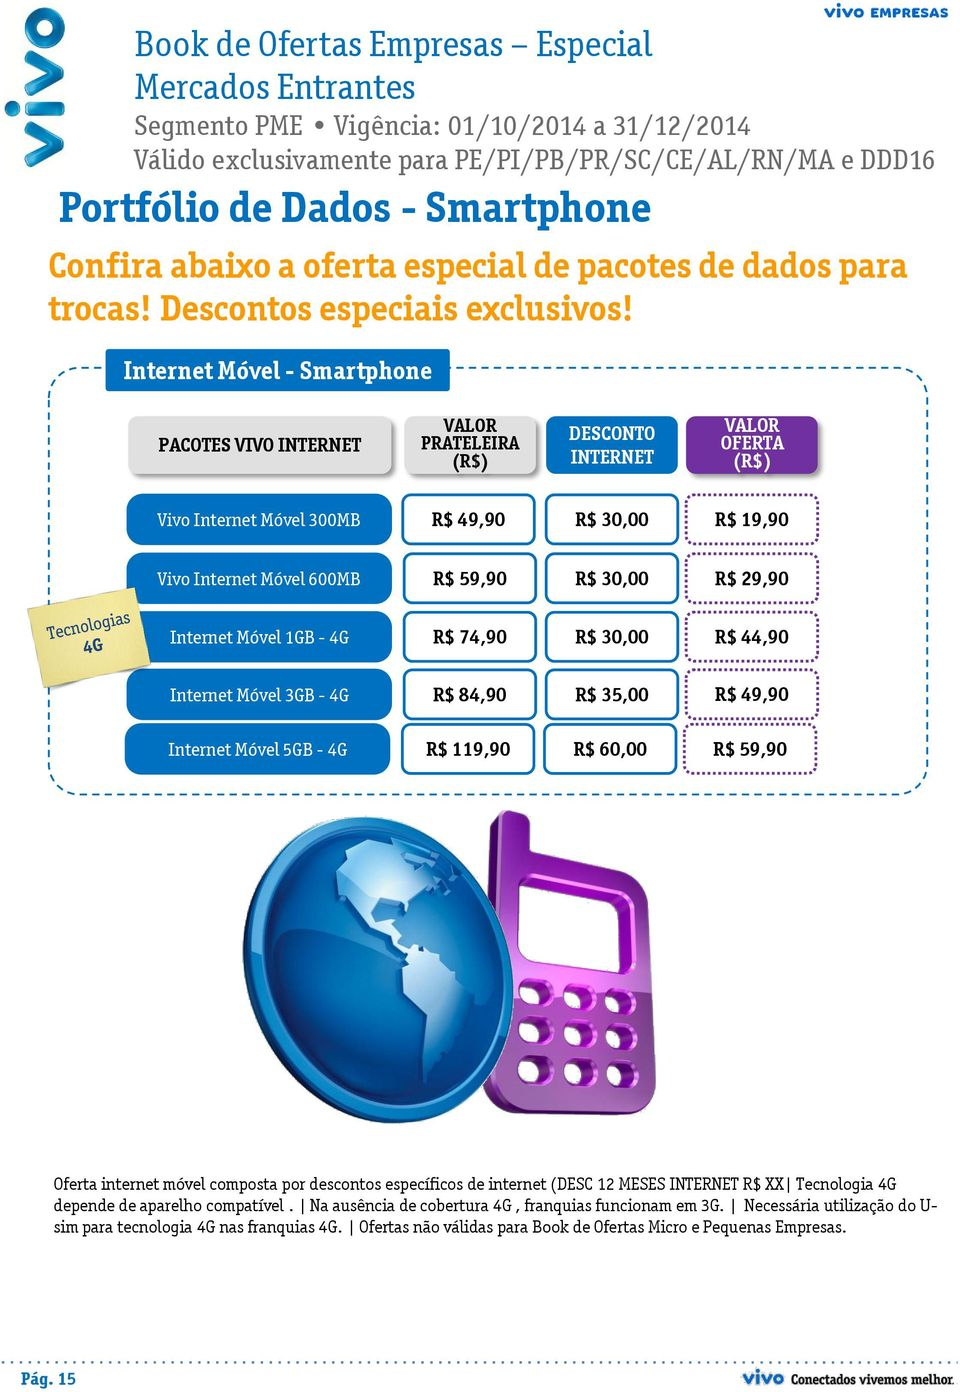 30,00 R$ 29,90 Internet Móvel 1GB - 4G R$ 74,90 R$ 30,00 R$ 44,90 Internet Móvel 3GB - 4G R$ 84,90 R$ 35,00 R$ 49,90 Internet Móvel 5GB - 4G R$ 119,90 R$ 60,00 R$ 59,90 Oferta internet móvel composta